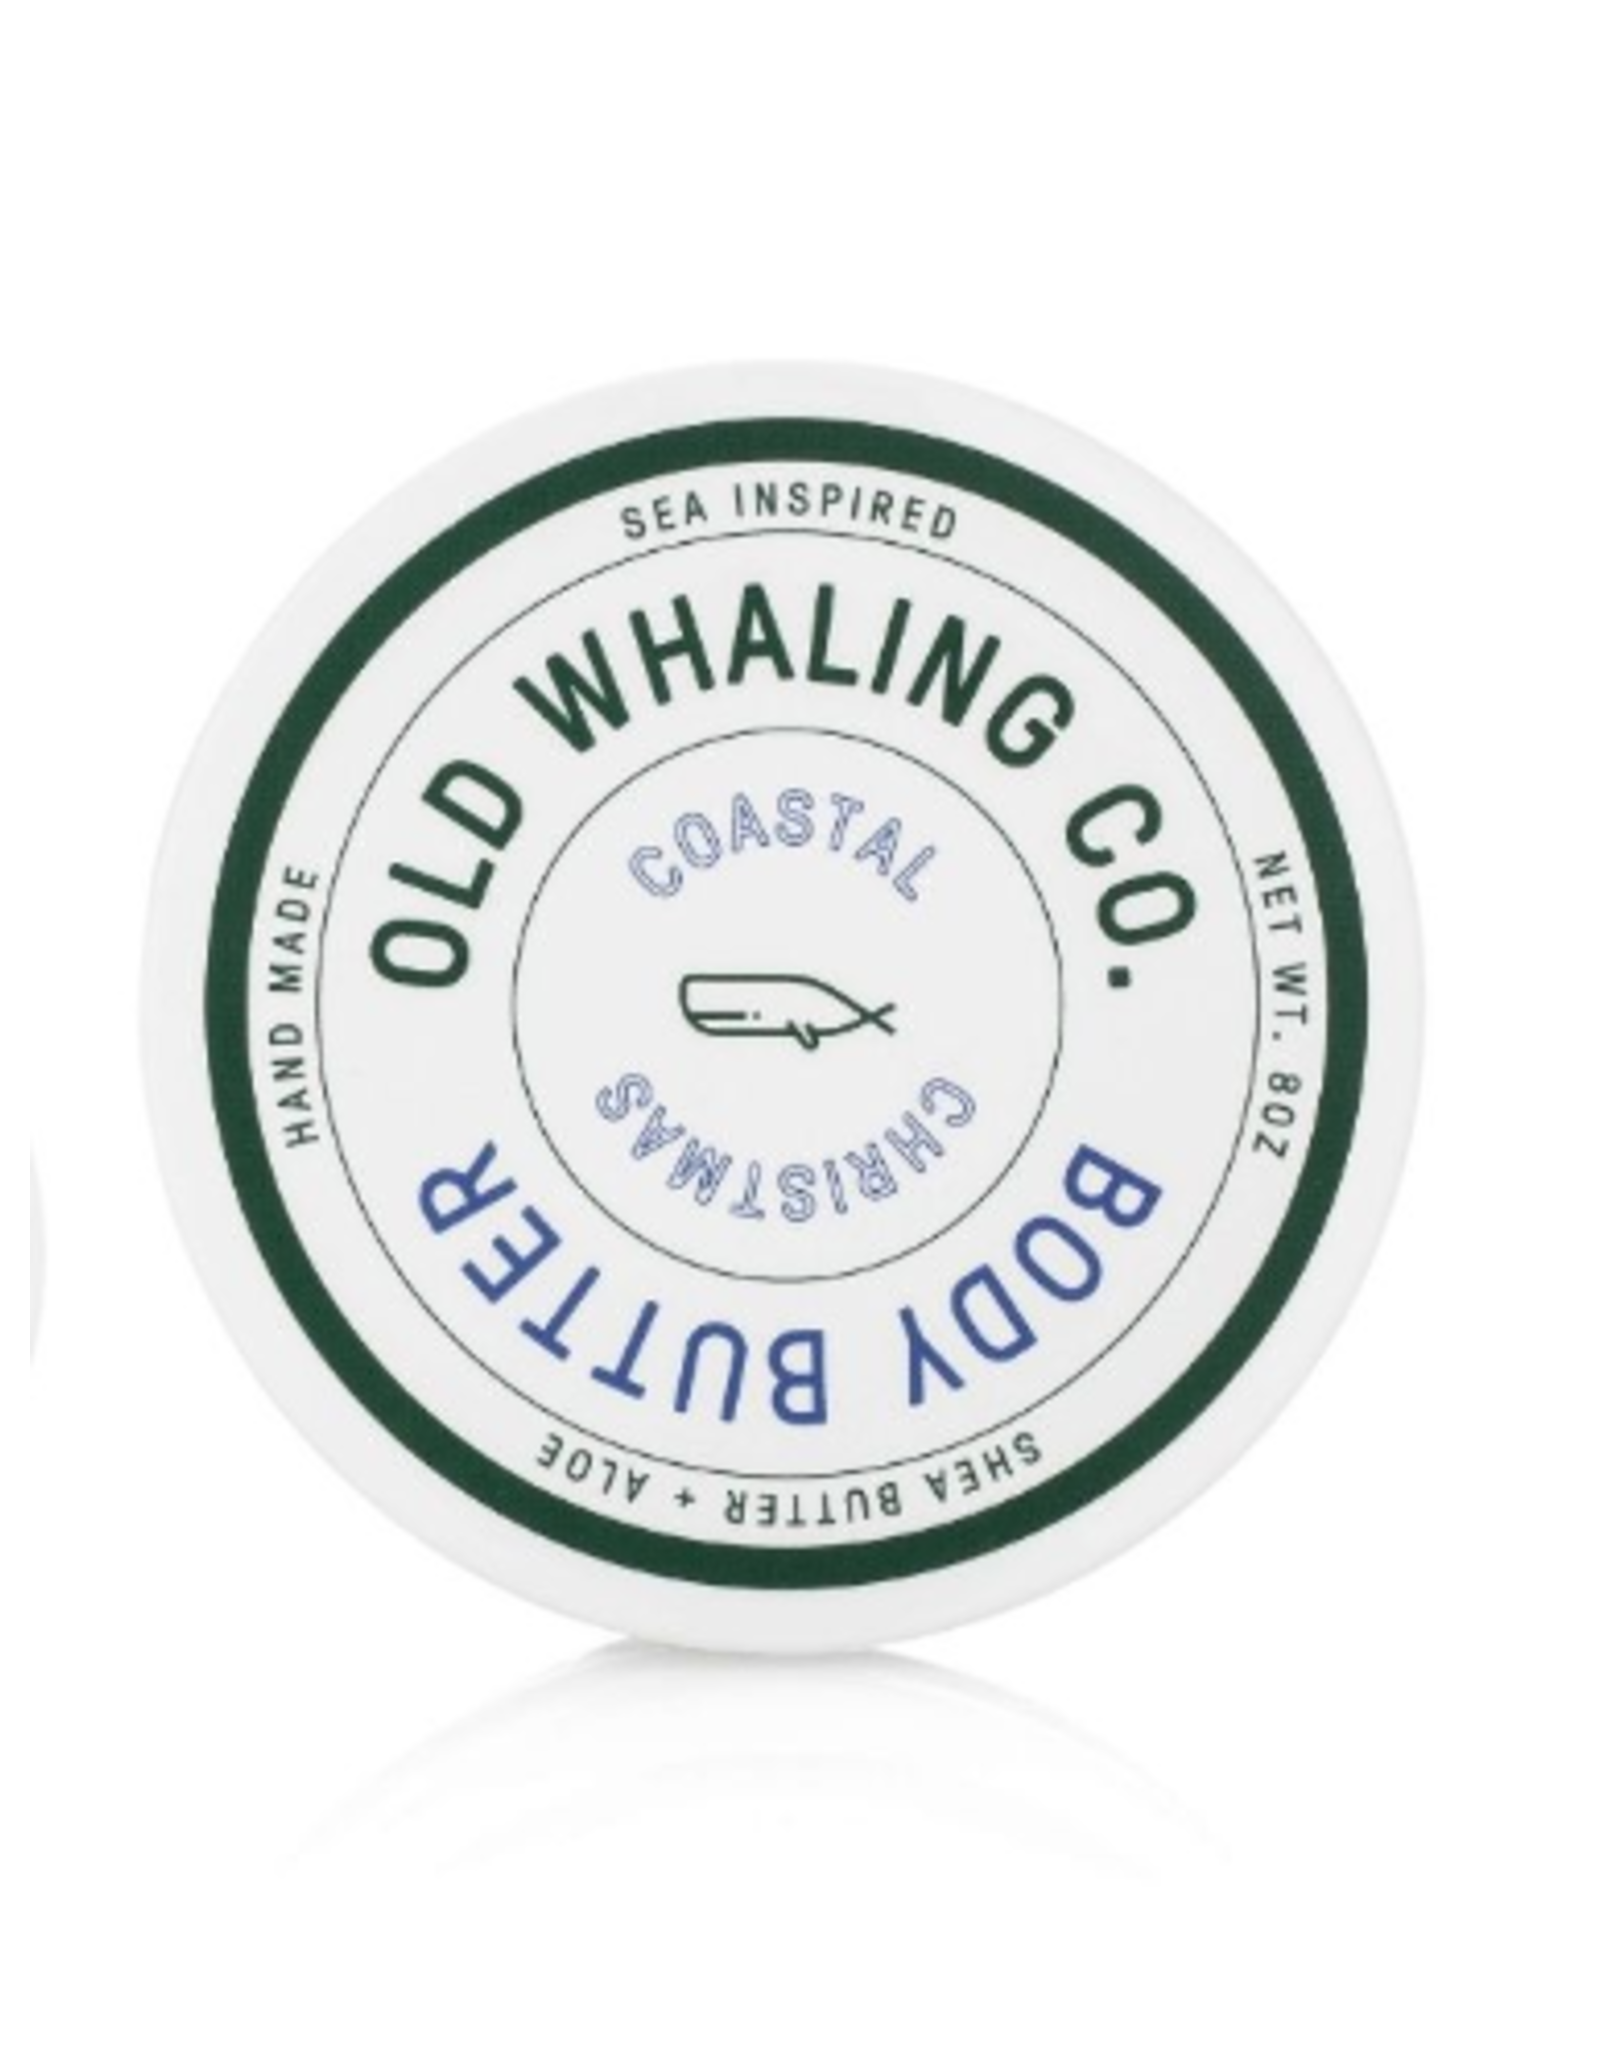 Old Whaling Co. Coastal Christmas 8oz Body Butter